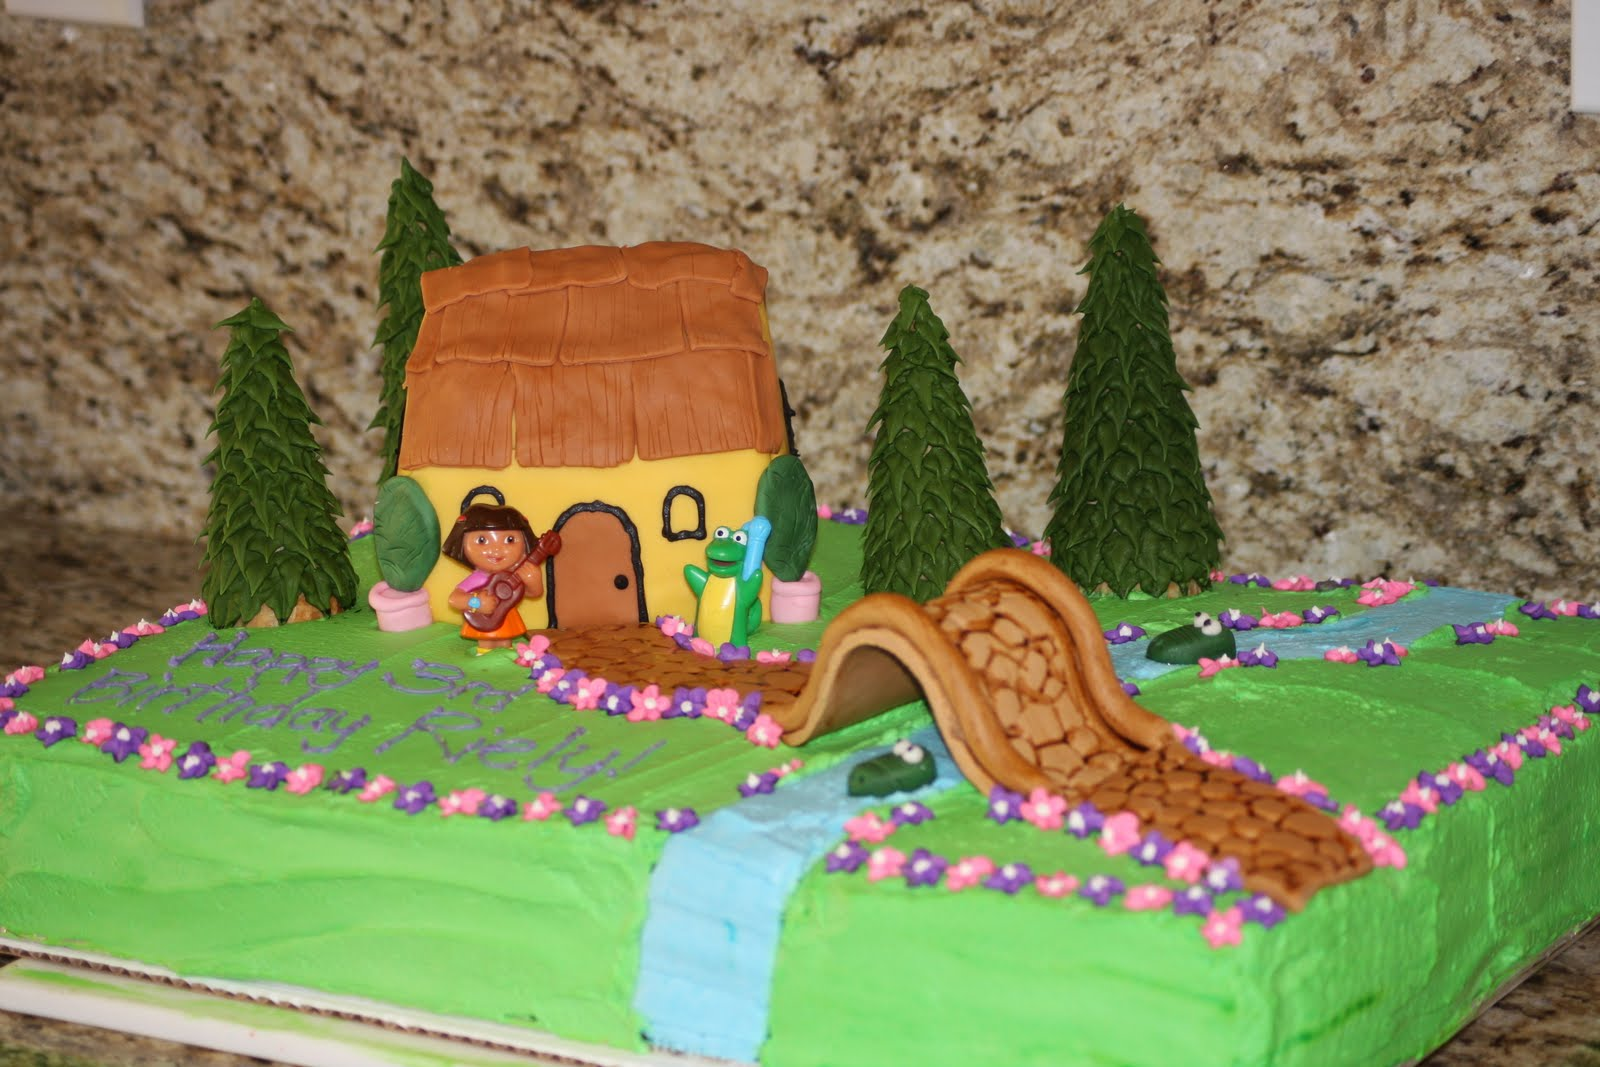 Cake Designs Dora The Explorer : Dora The Explorer Birthday Cake Dora The Explorer ...